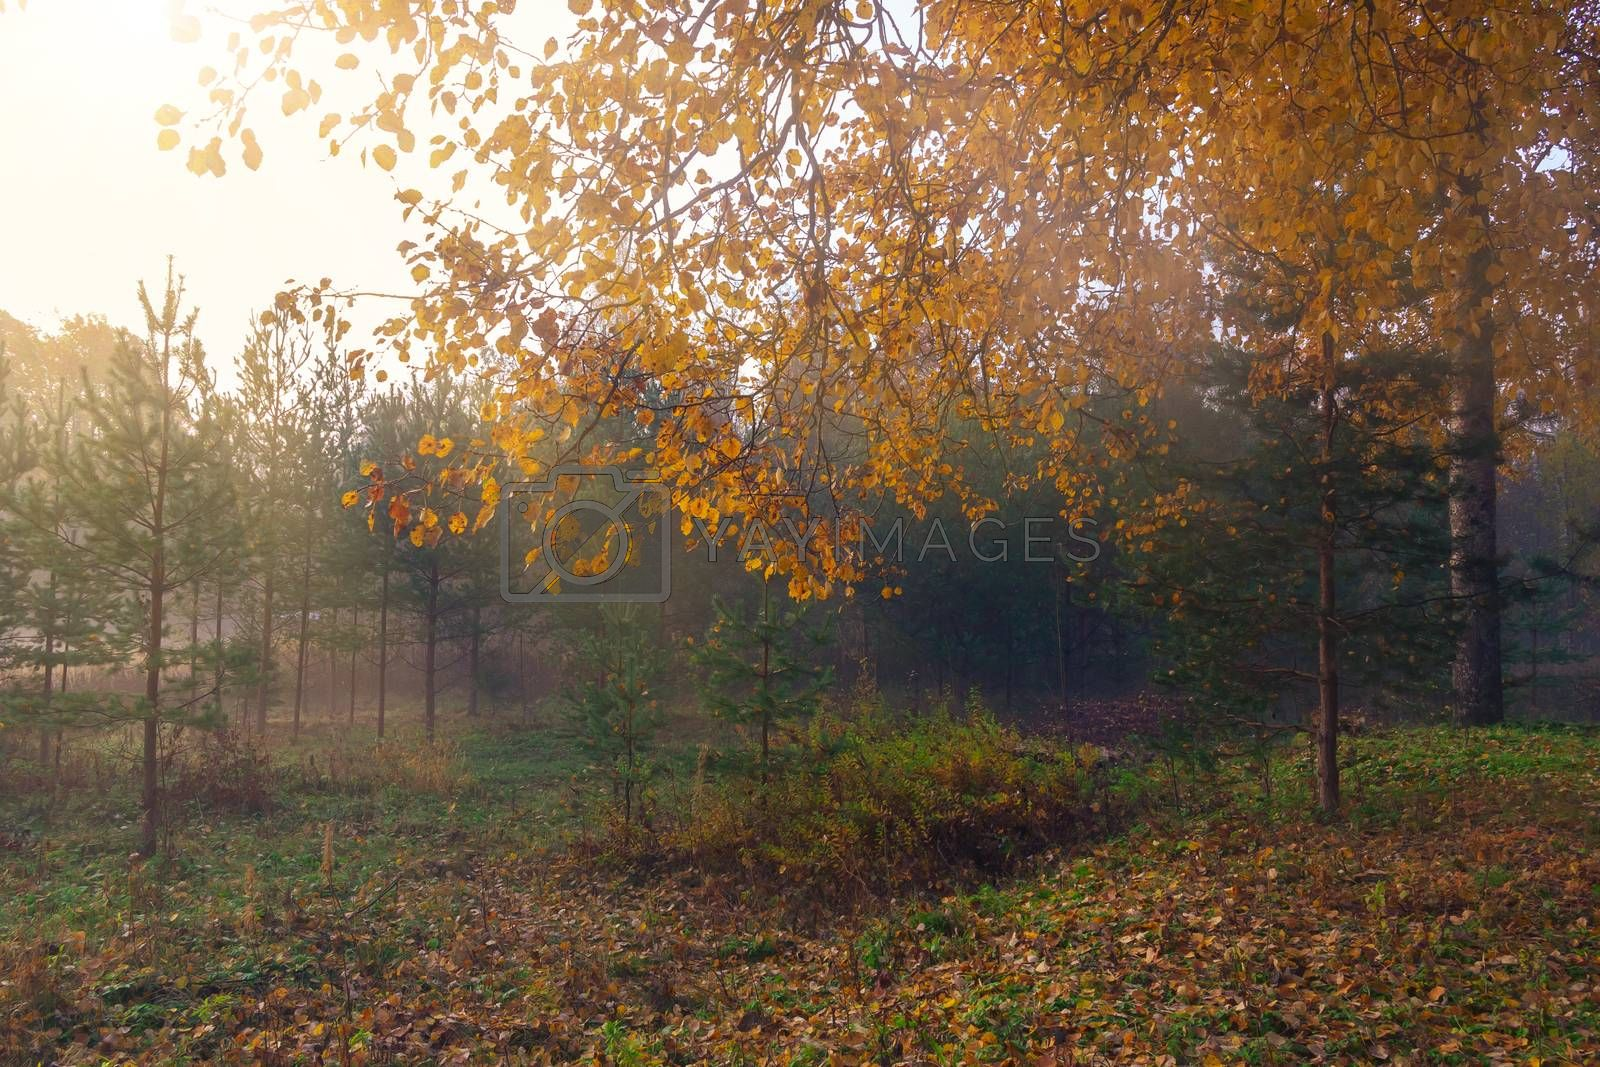 Fog in the autumn forest at sunrise, autumn background by galsand